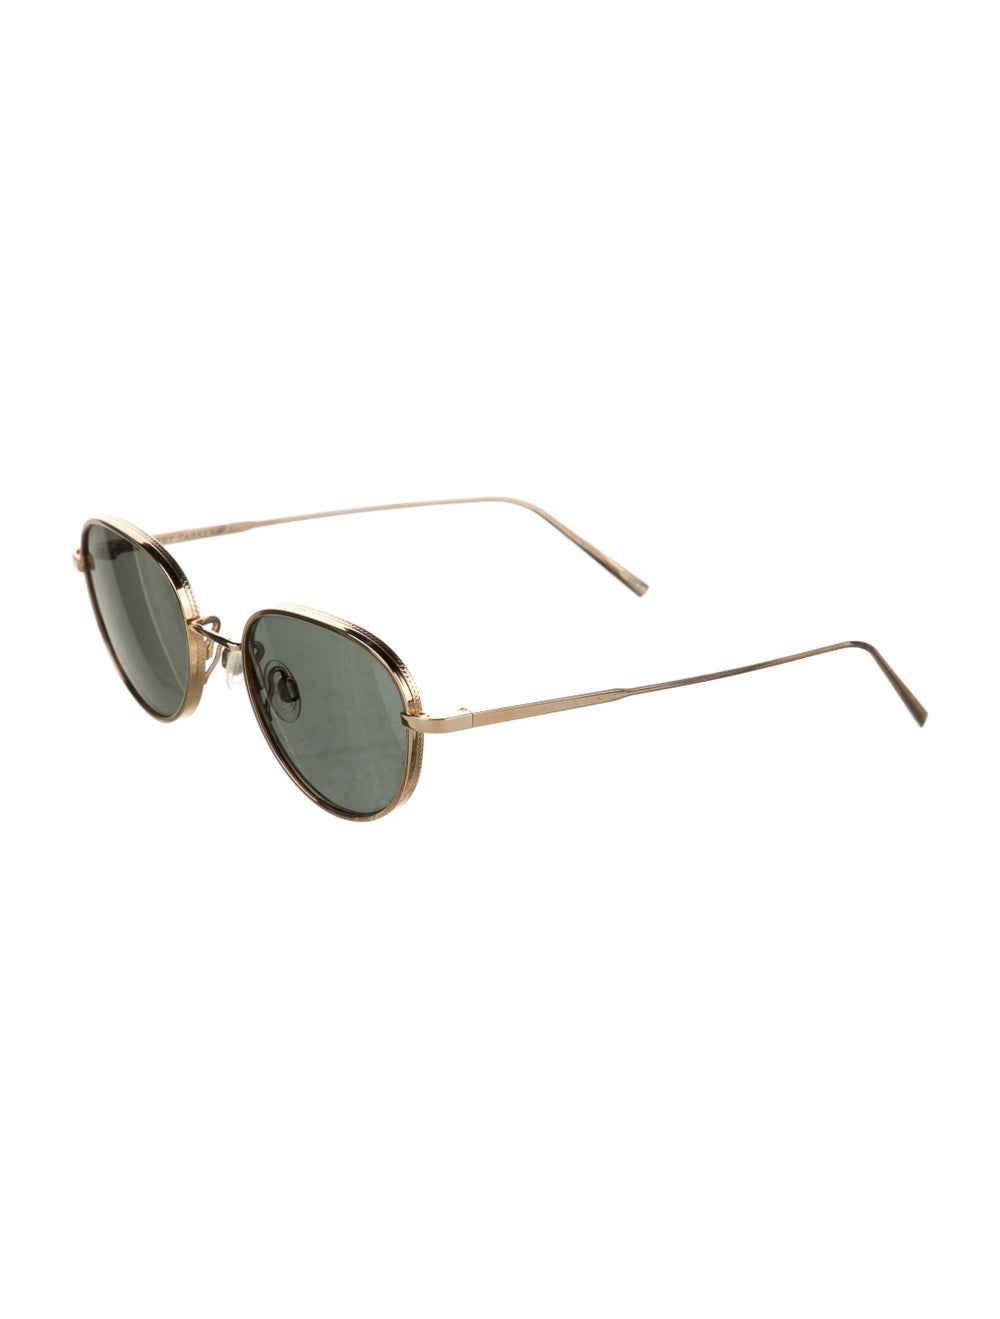 Warby Parker Round Tinted Sunglasses Gold - image 2